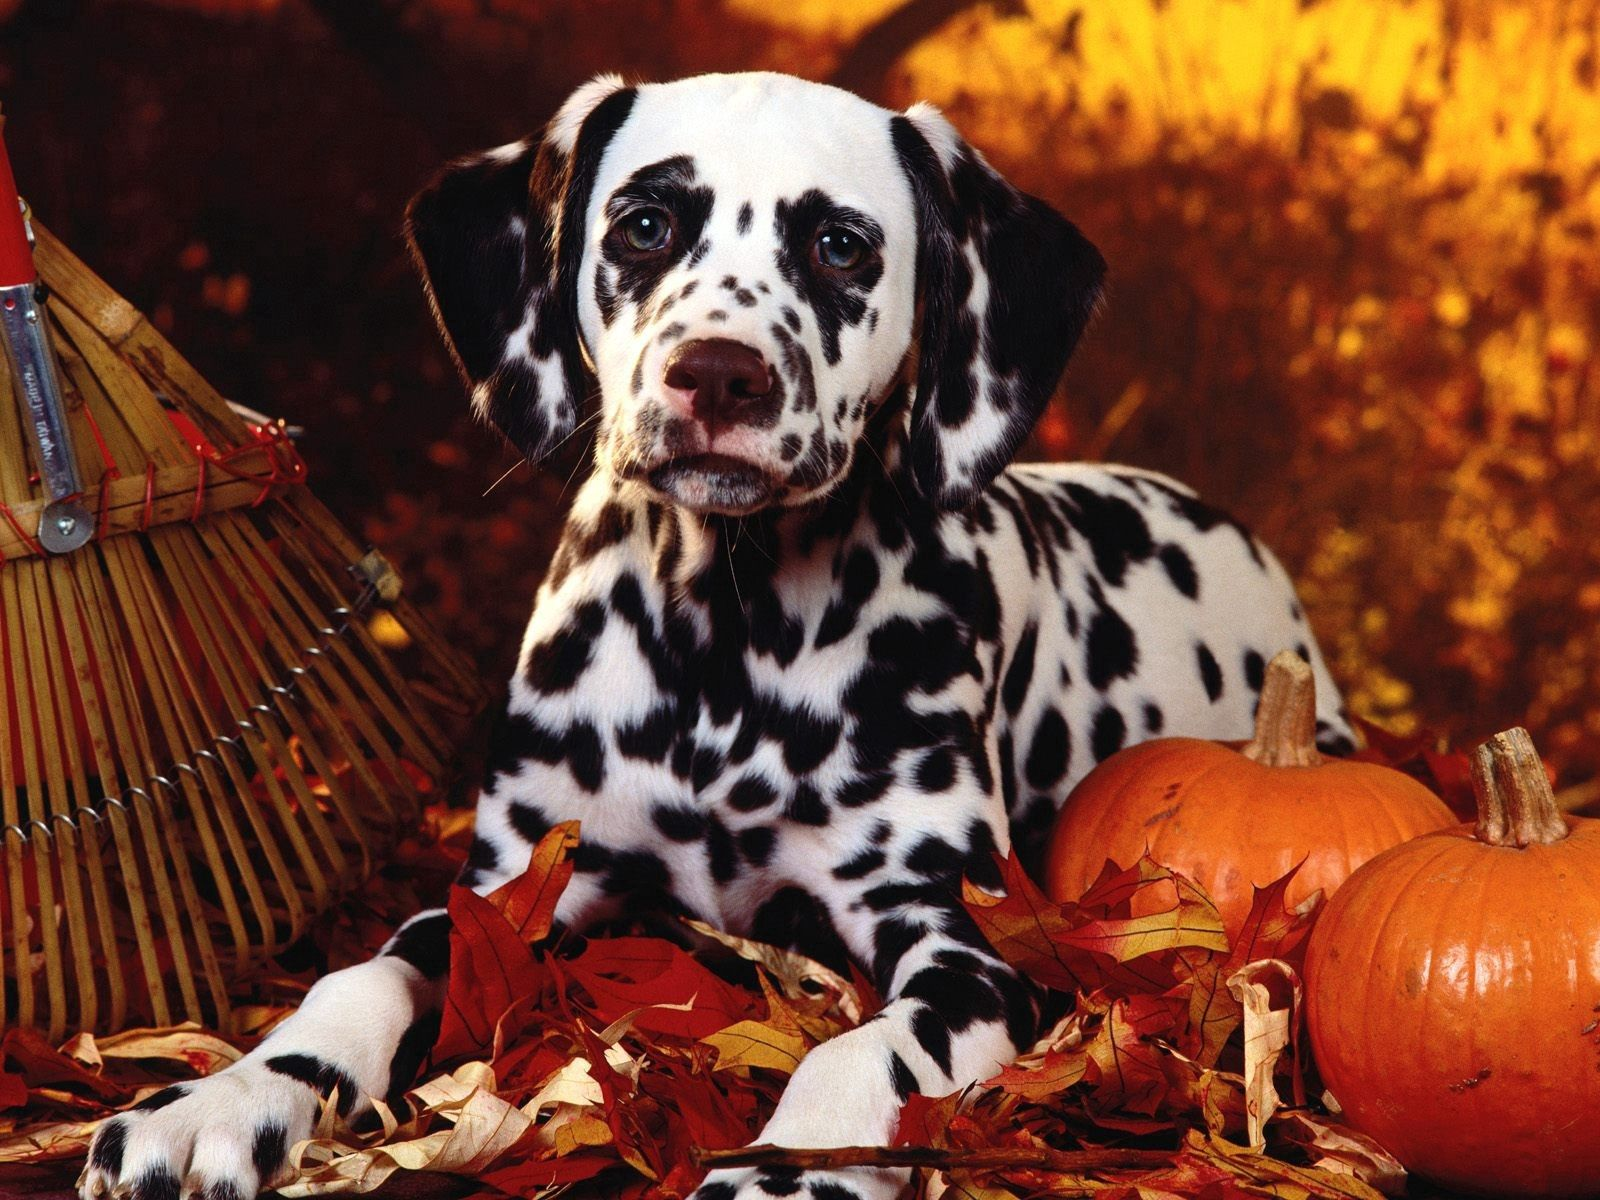 50708 download wallpaper Animals, Halloween, Pumpkin, Sit, Dog, Foliage, Dalmatian, Dalmatians, Breed screensavers and pictures for free